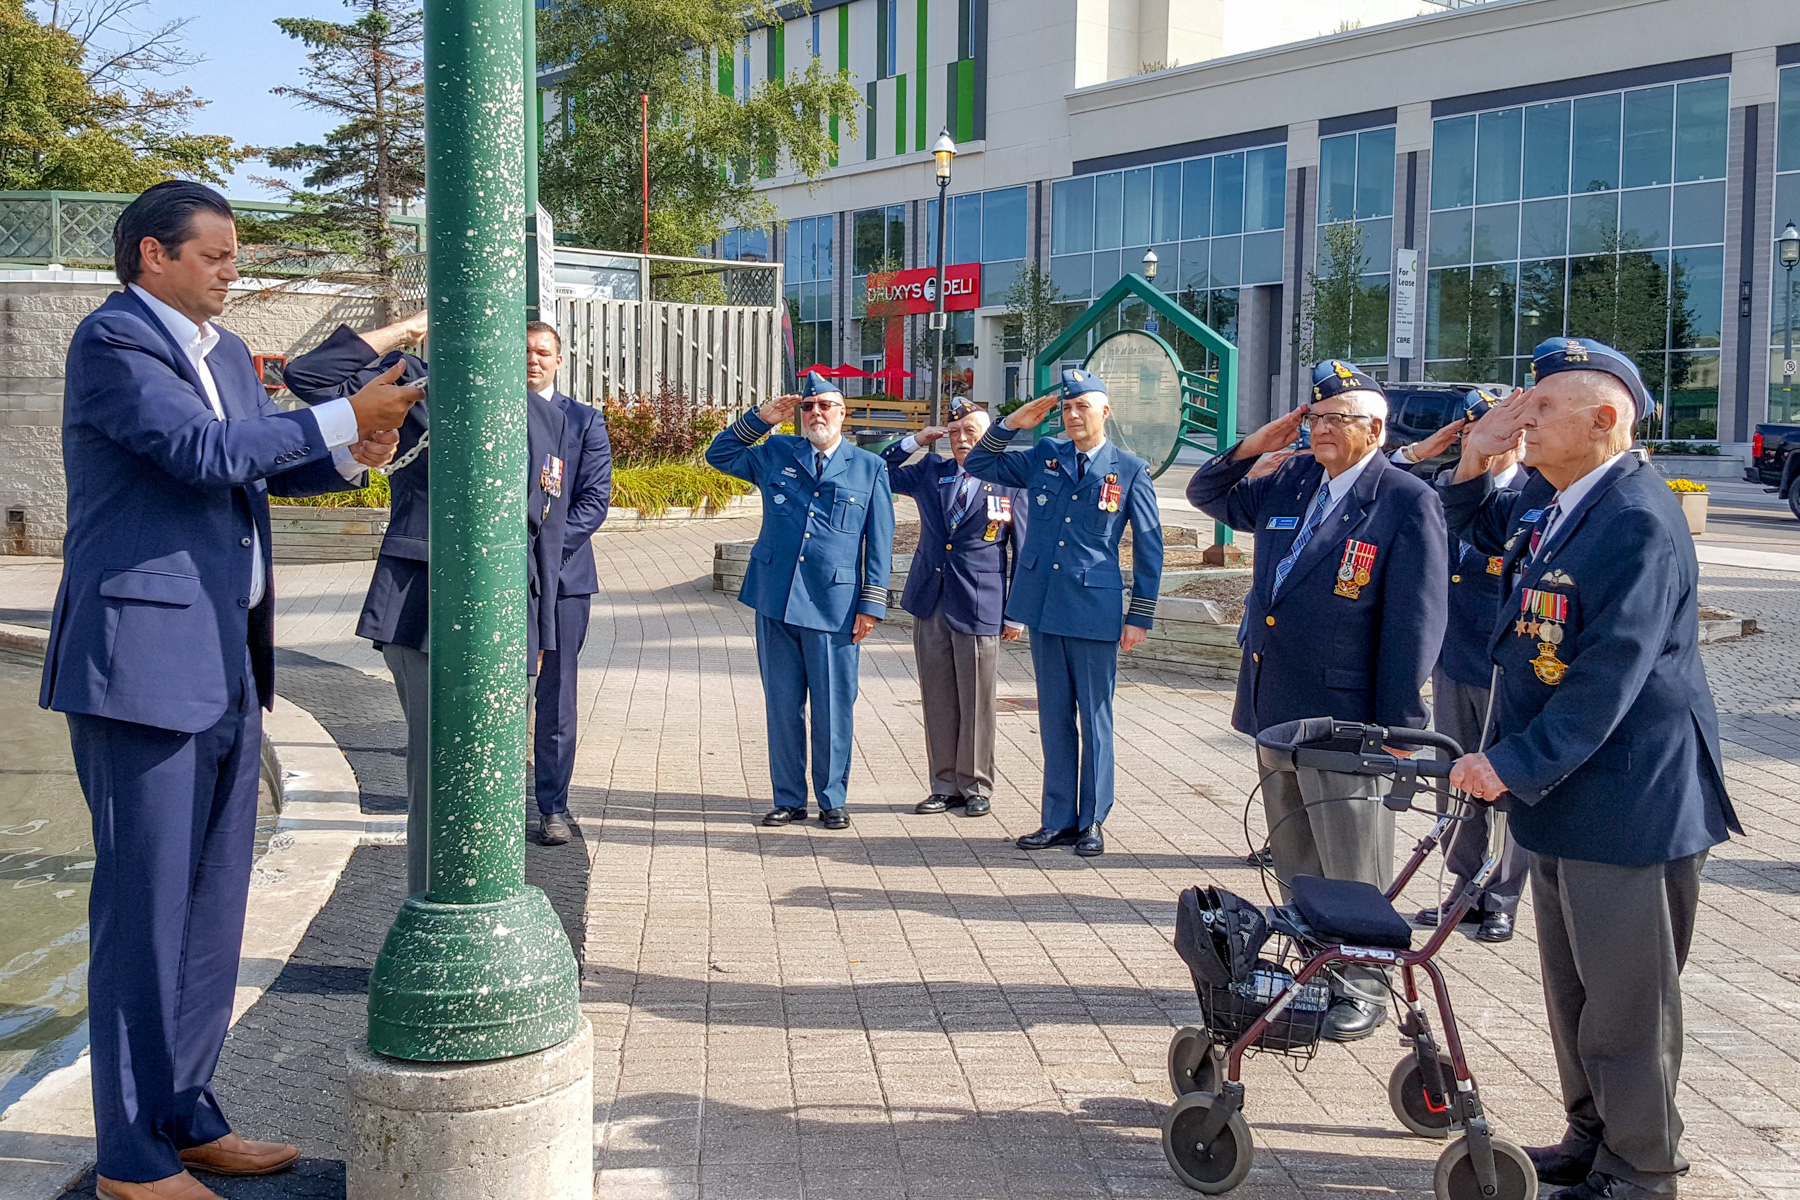 Royal Canadian Air Force members and veterans salute on September 13, 2017, as Barrie, Ontario, Mayor Jeff Lehman raises the Royal Canadian Air Force flag at Barrie City Hall in commemoration of the Battle of Britain. PHOTO: Corporal Aydyn Neifer, BM03-2017-0313-09